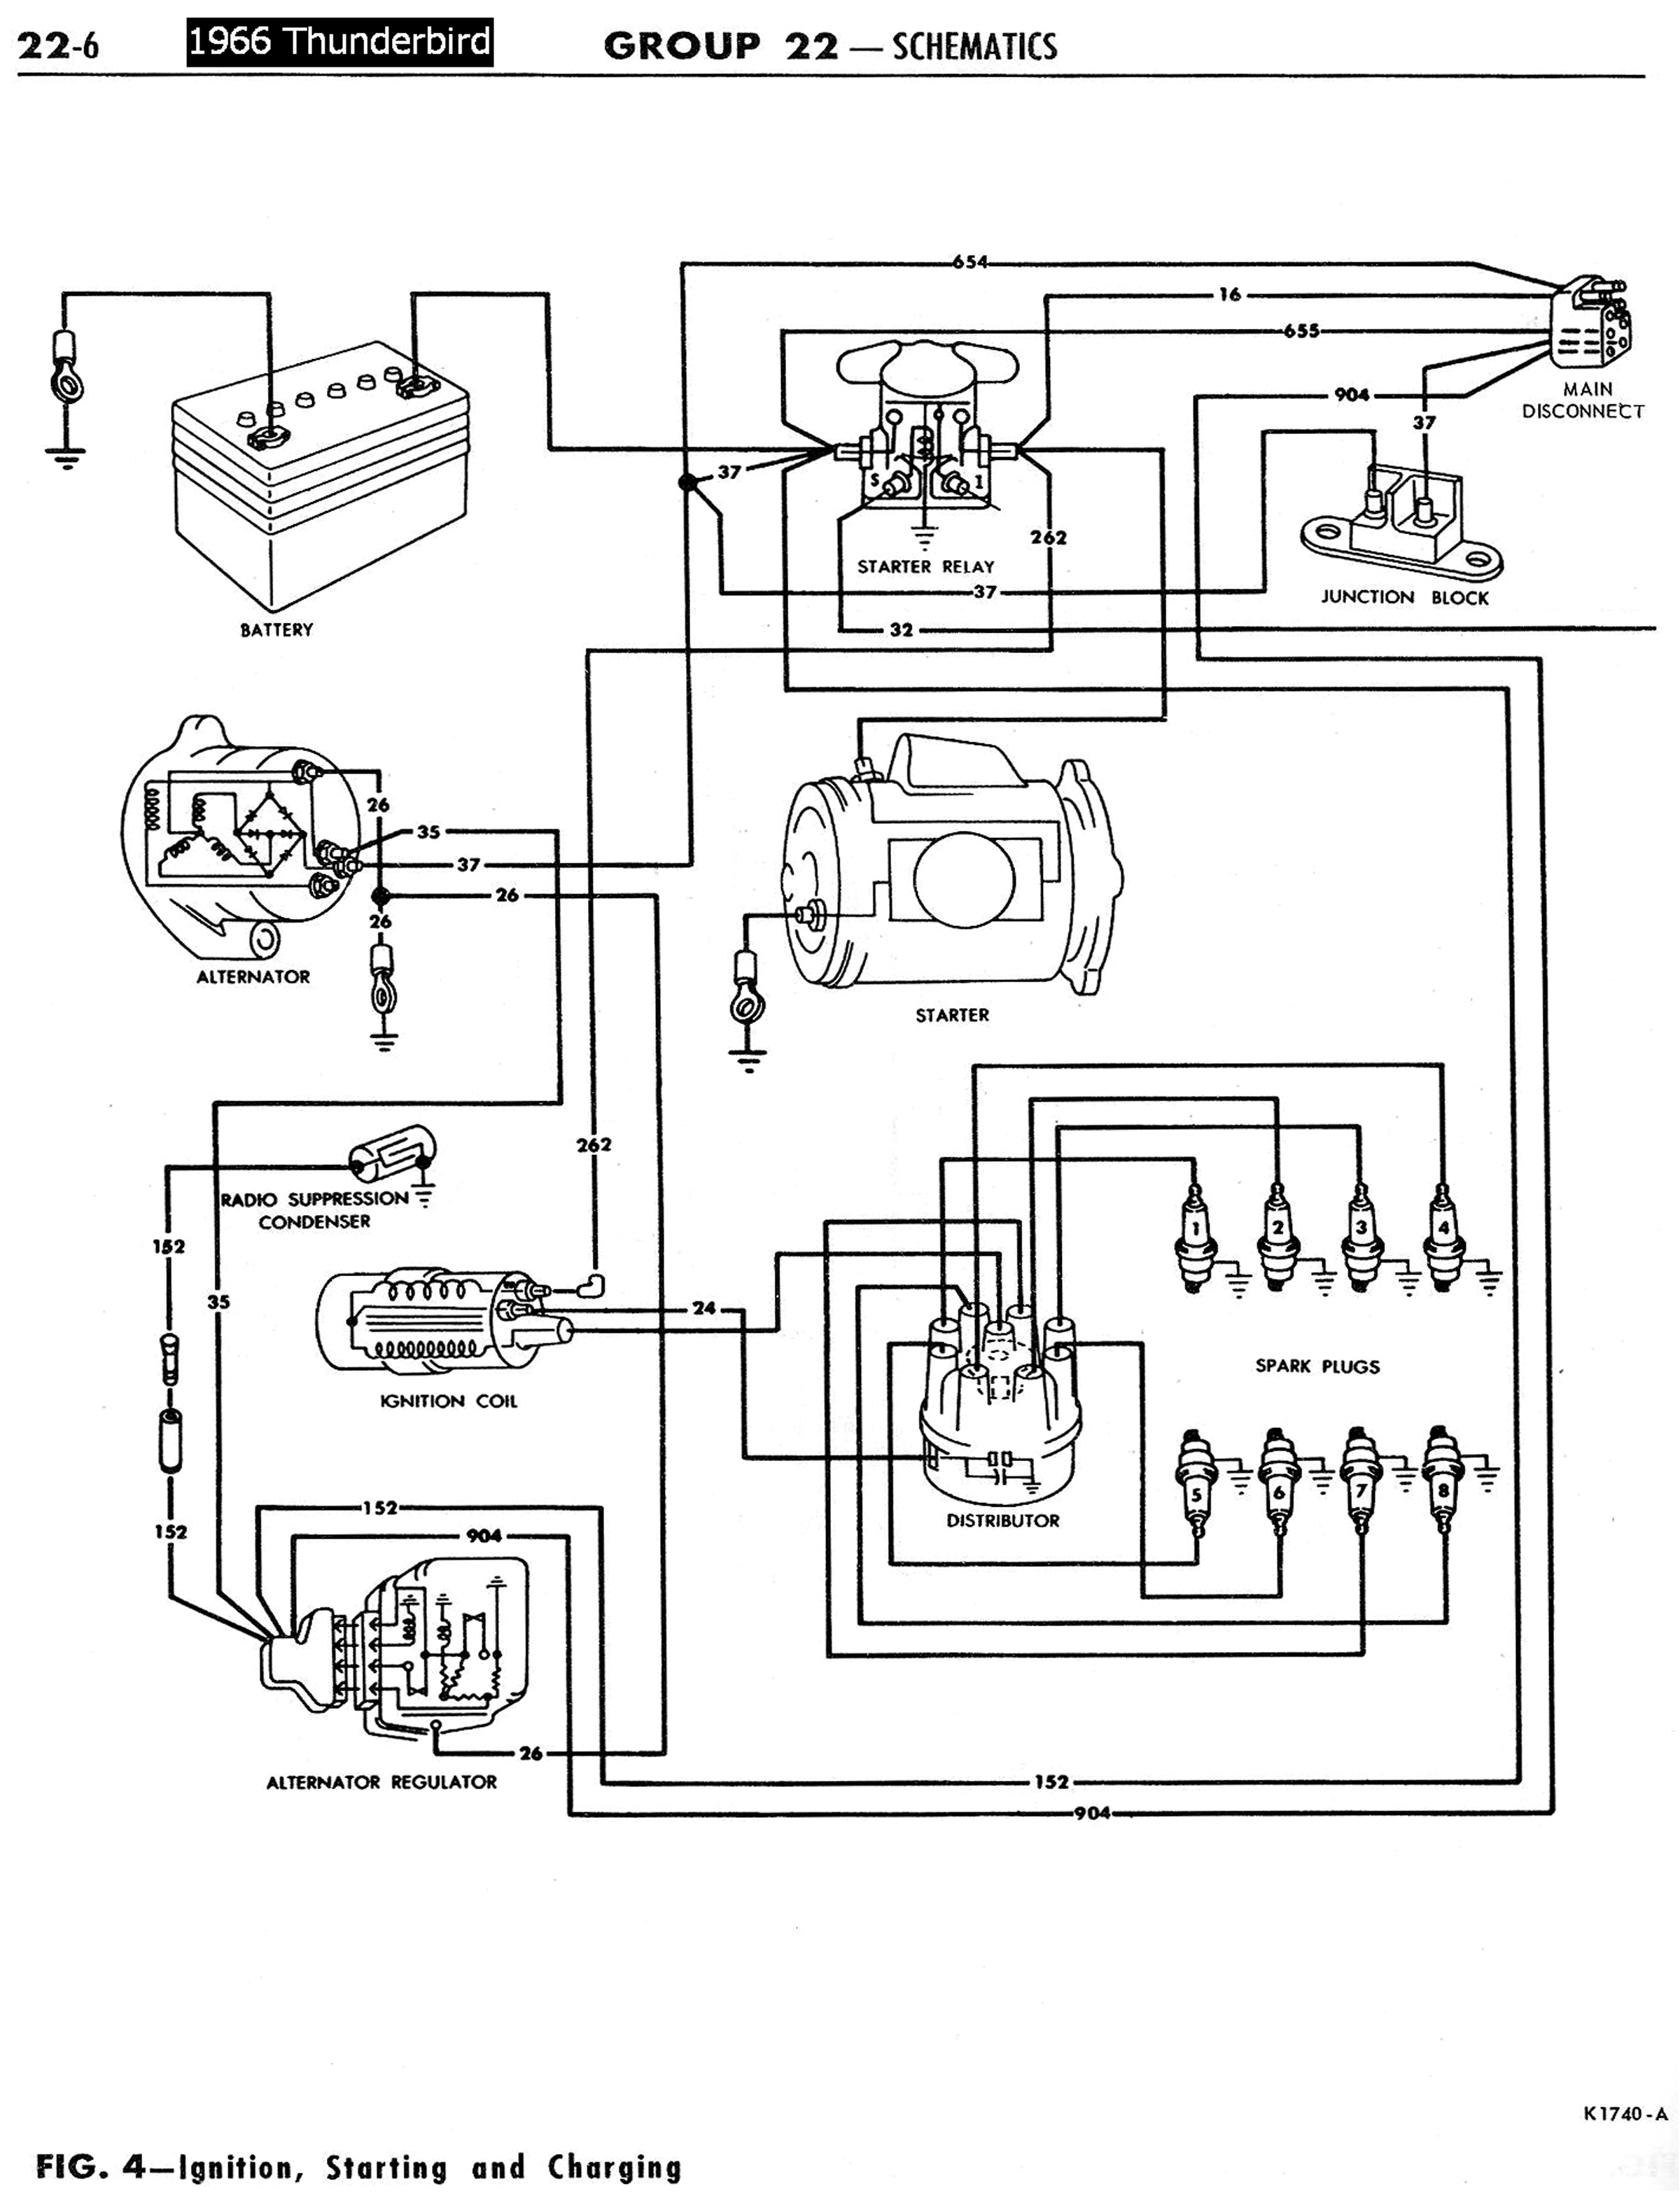 1955 Ford Thunderbird Wiring Diagram : 36 Wiring Diagram